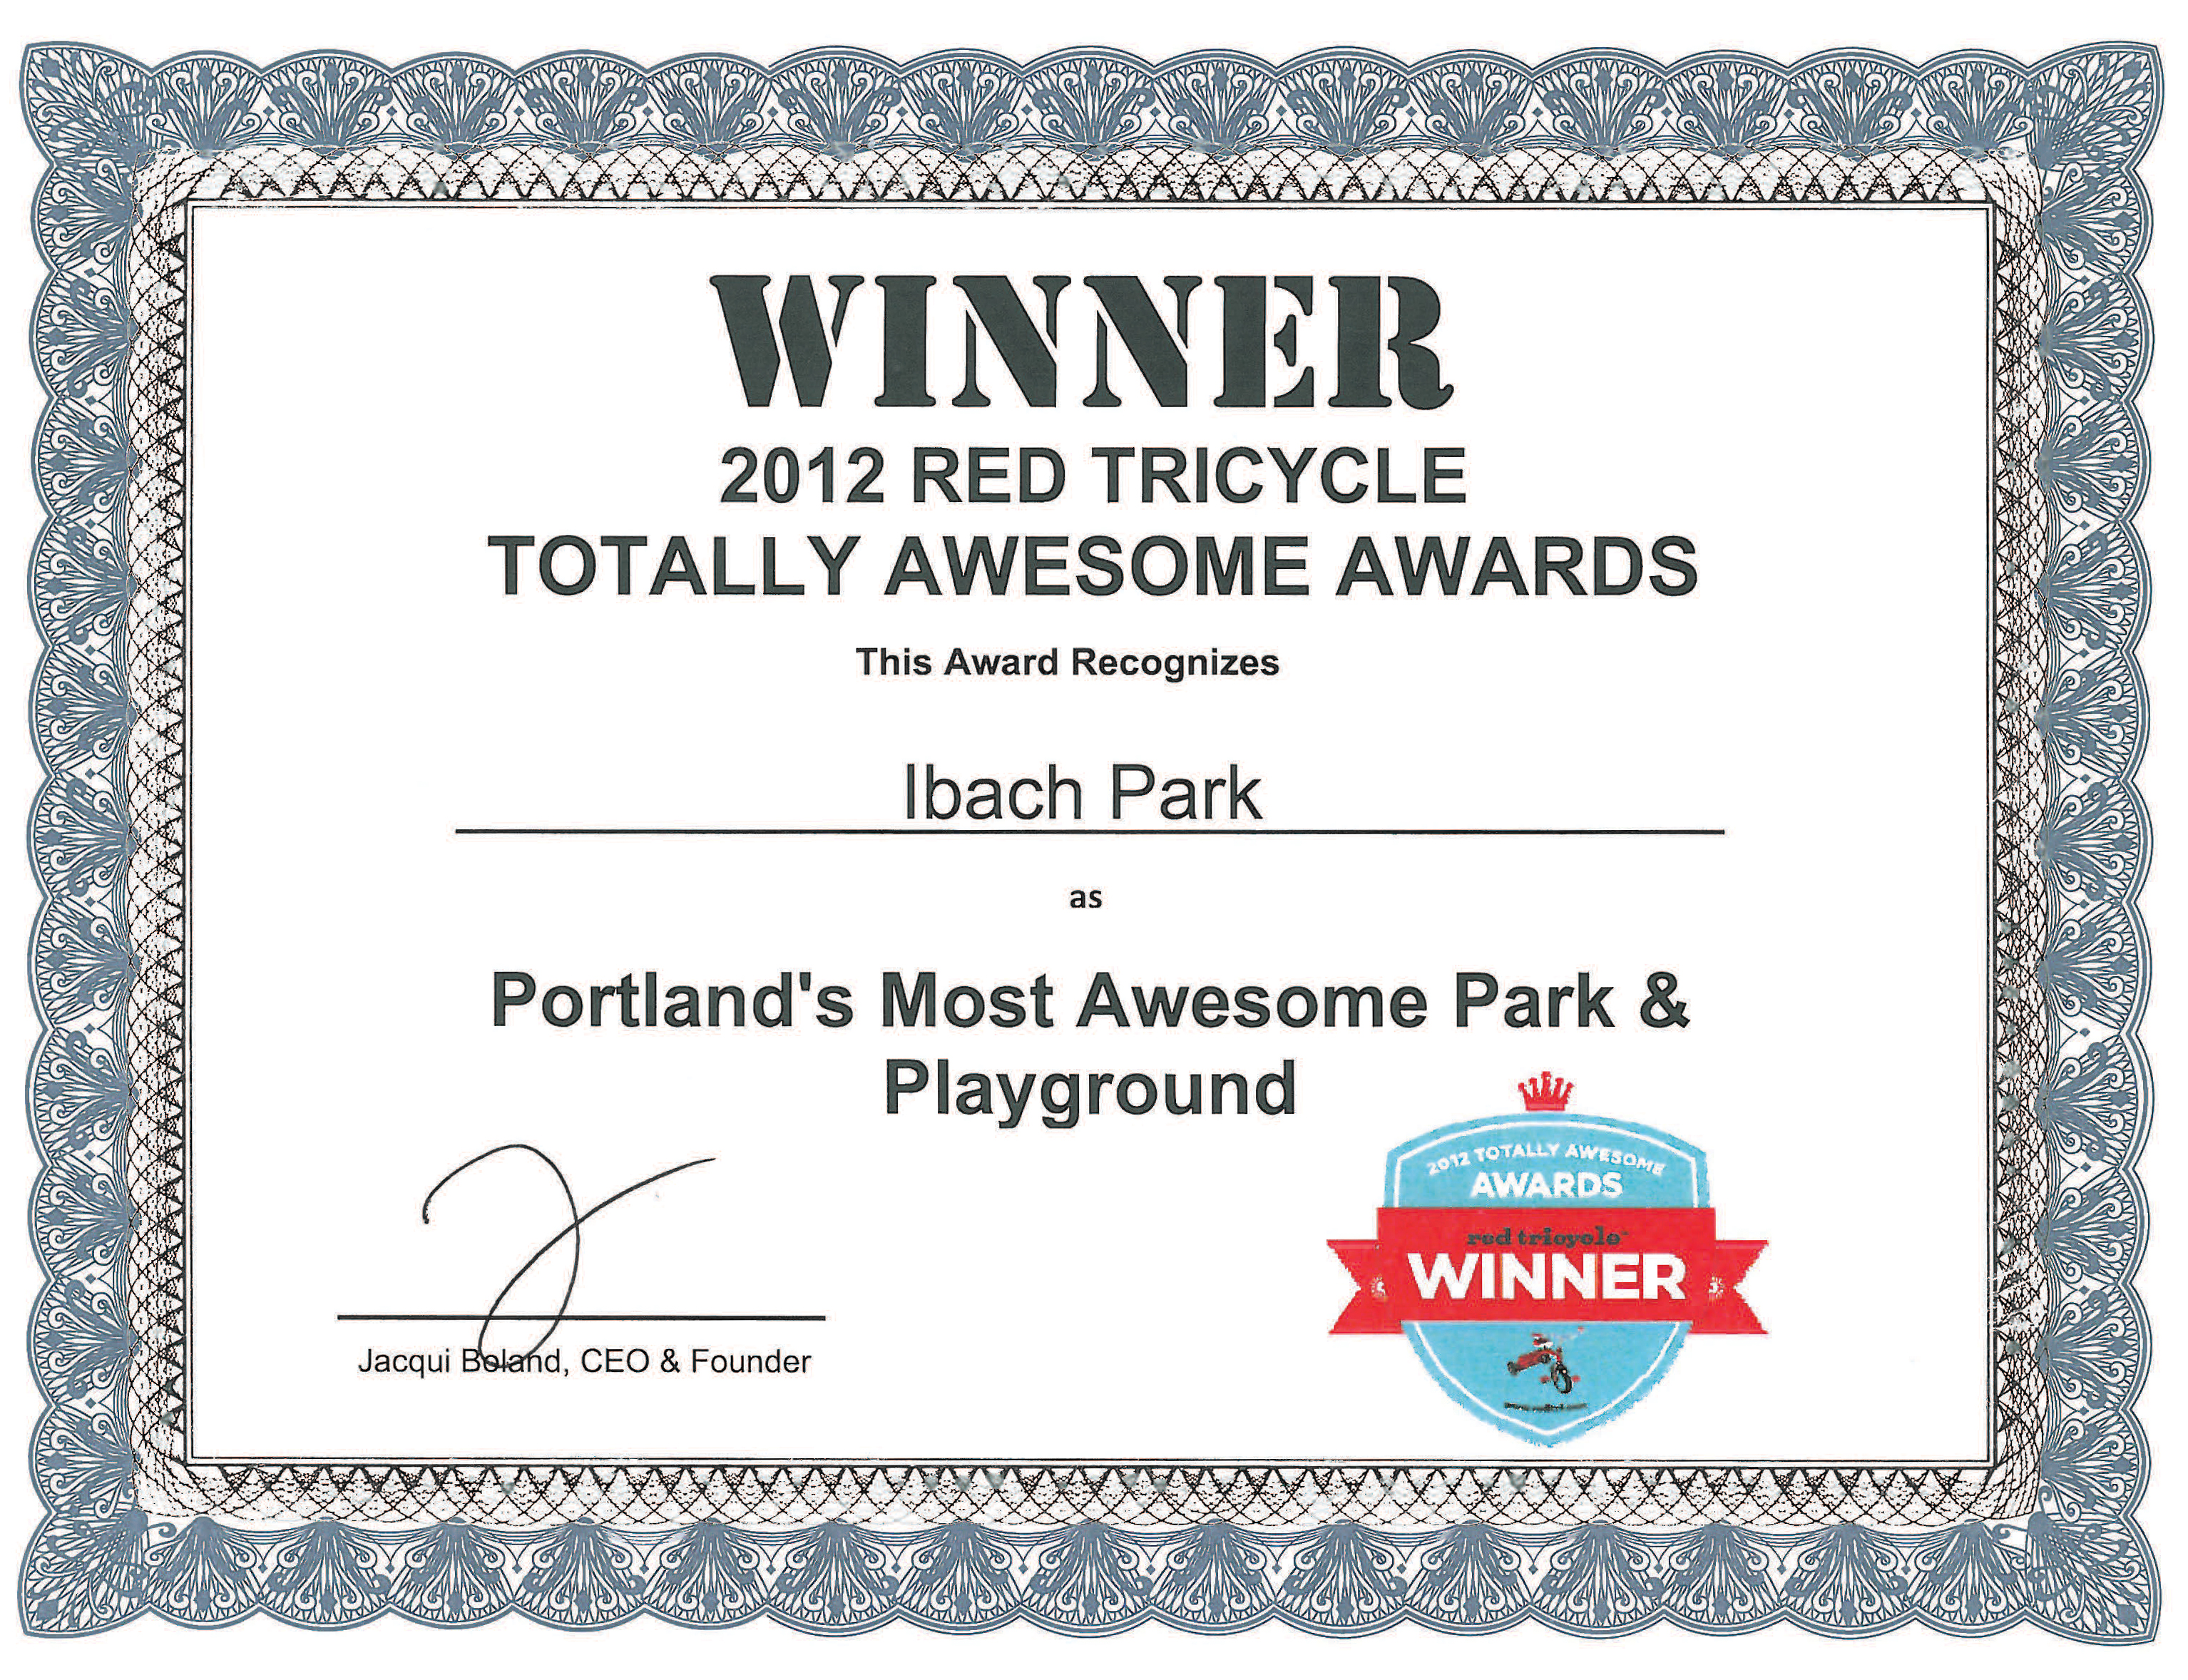 Ibach Park Wins 2012 Red Tricycle Totally Awesome Award – Winner Certificate